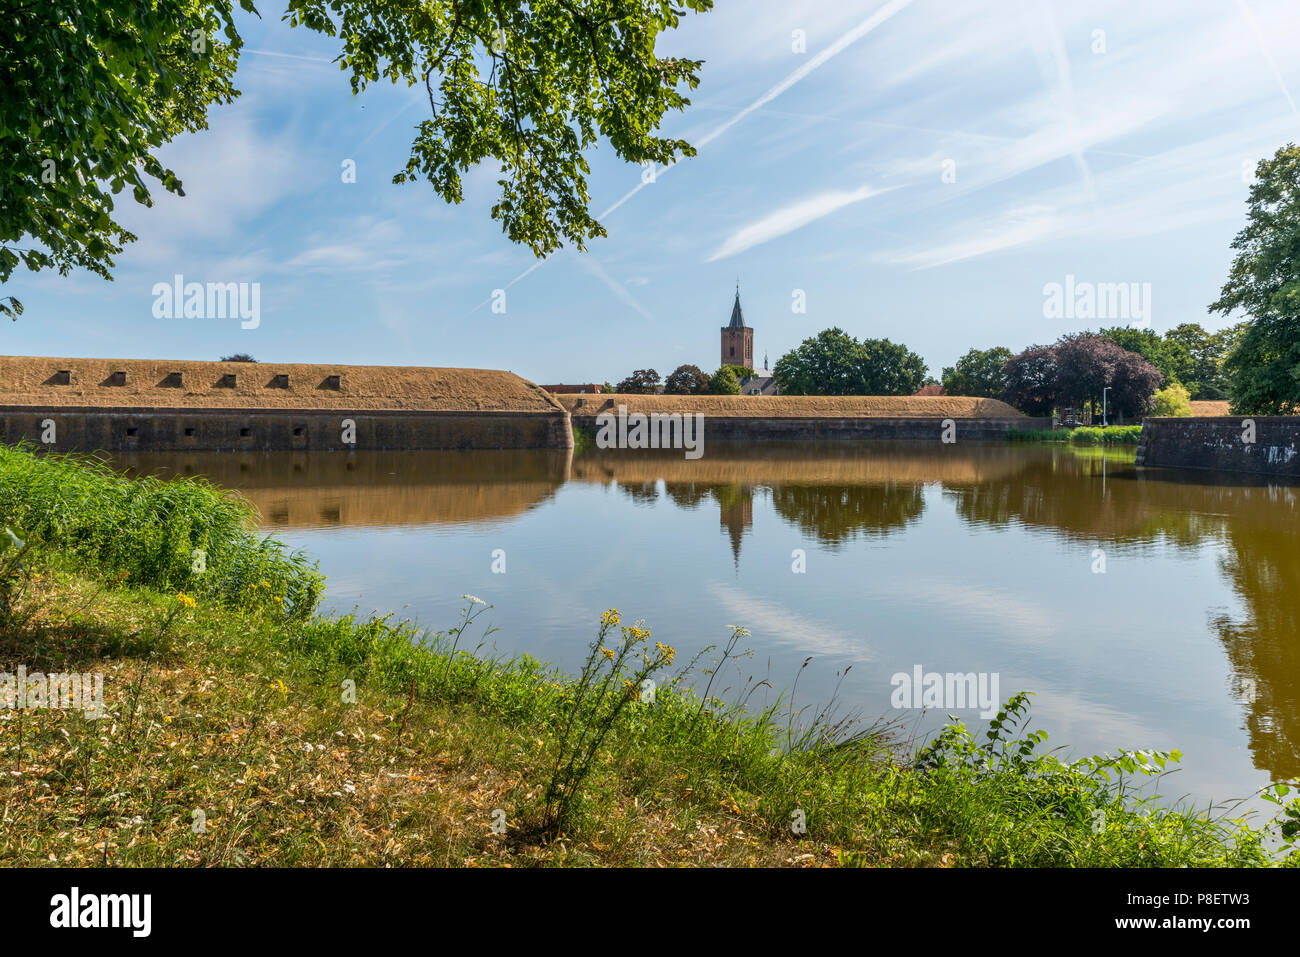 Bastion Oranje the old fortified town of Naarden, North Holland, Netherlands, Dutch fortress in water surrounded Naarden Vesting - Stock Image